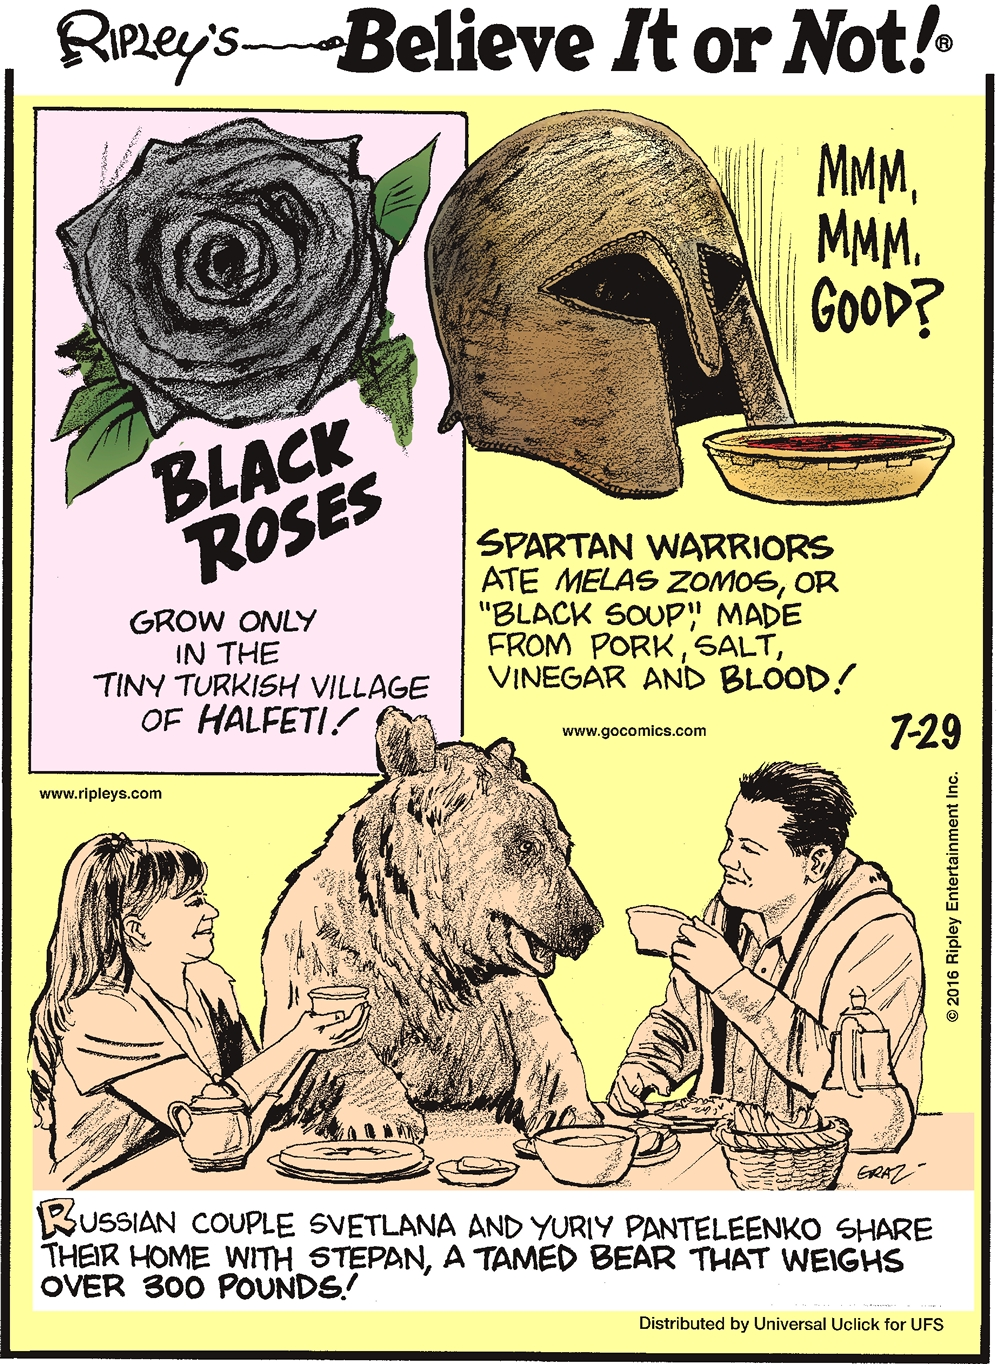 "Black roses grow only in the tiny Turkish village of Halfeti! -------------------- Spartan warriors ate melas zomos, or ""black soup,"" made from pork, salt, vinegar, and blood! -------------------- Russian couple Svetlana and Yuriy Panteleenko share their home with Stephan, a tamed bear that weighs over 300 pounds!"